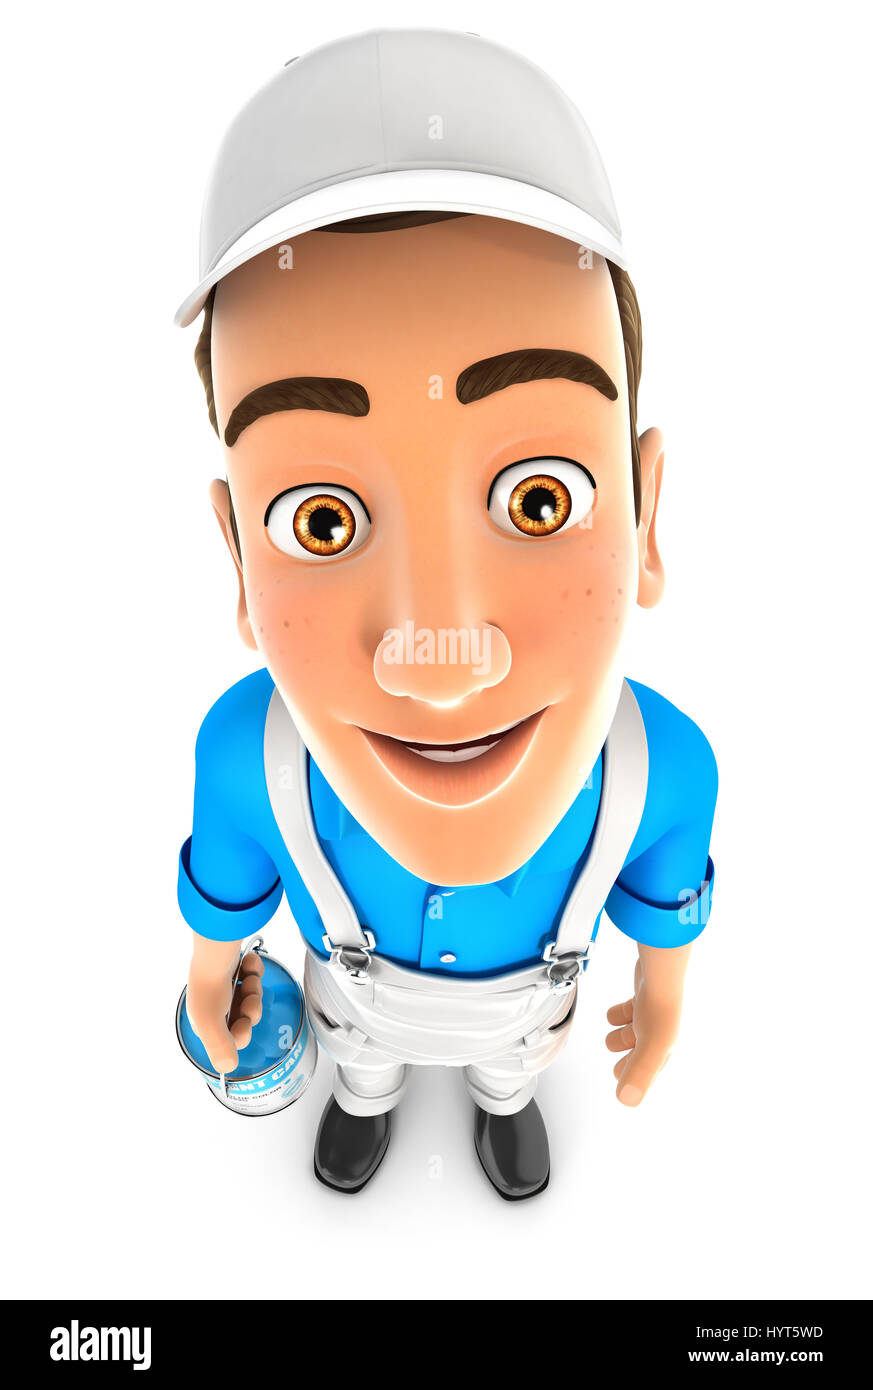 3d painter standing and looking up at camera, illustration with isolated white background Stock Photo